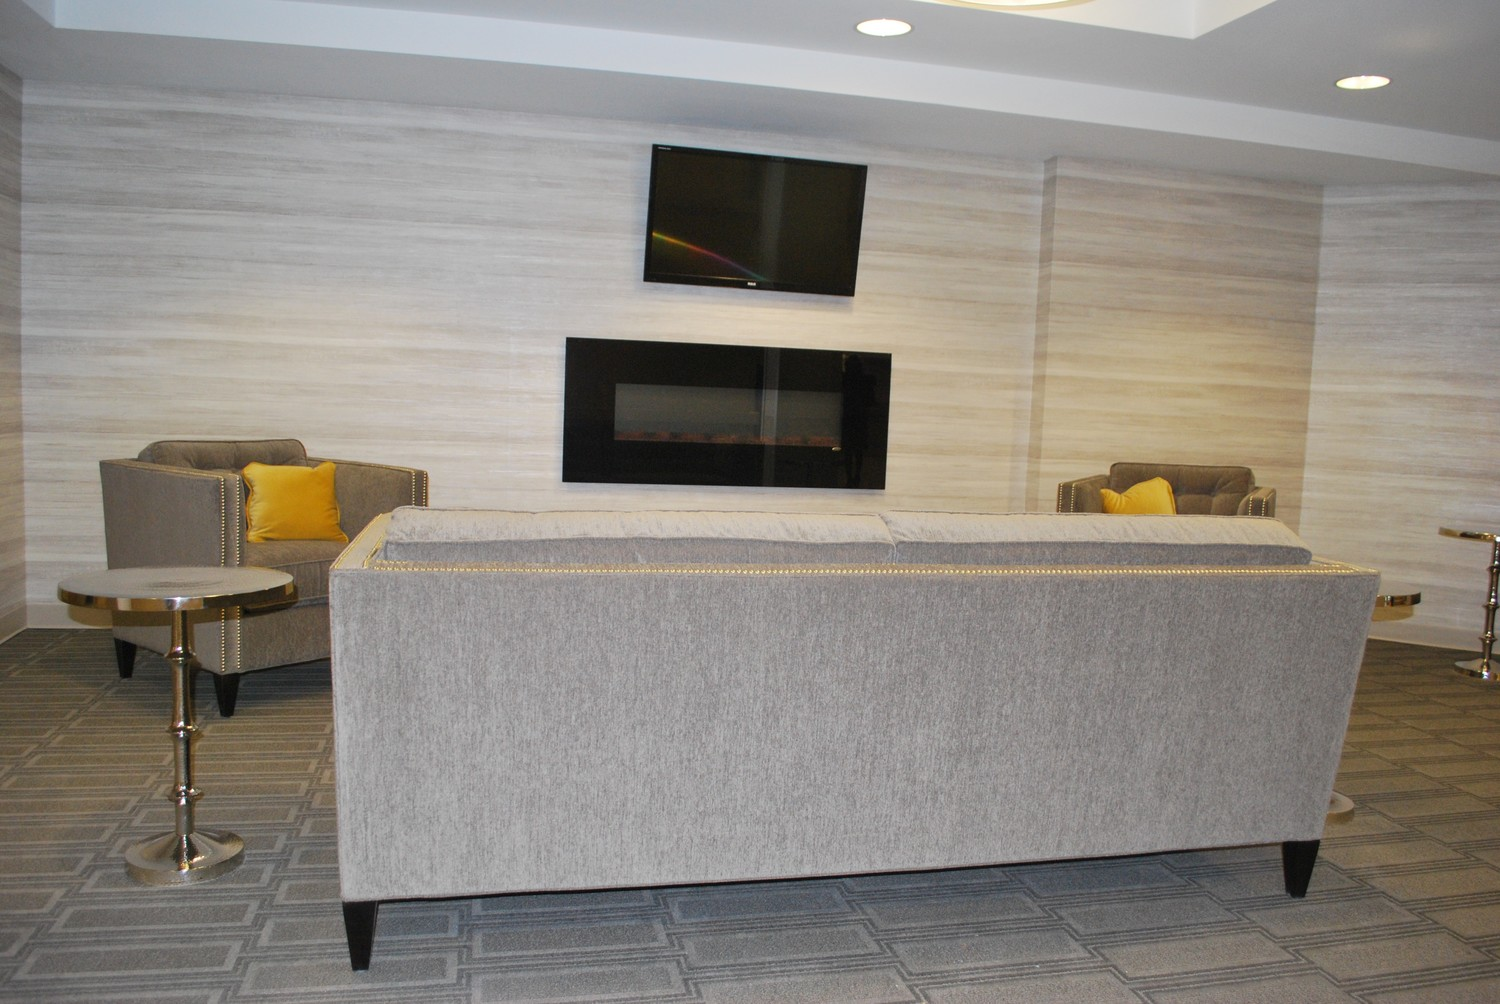 A common area for residents to relax outside their rooms, watch television, read or talk.